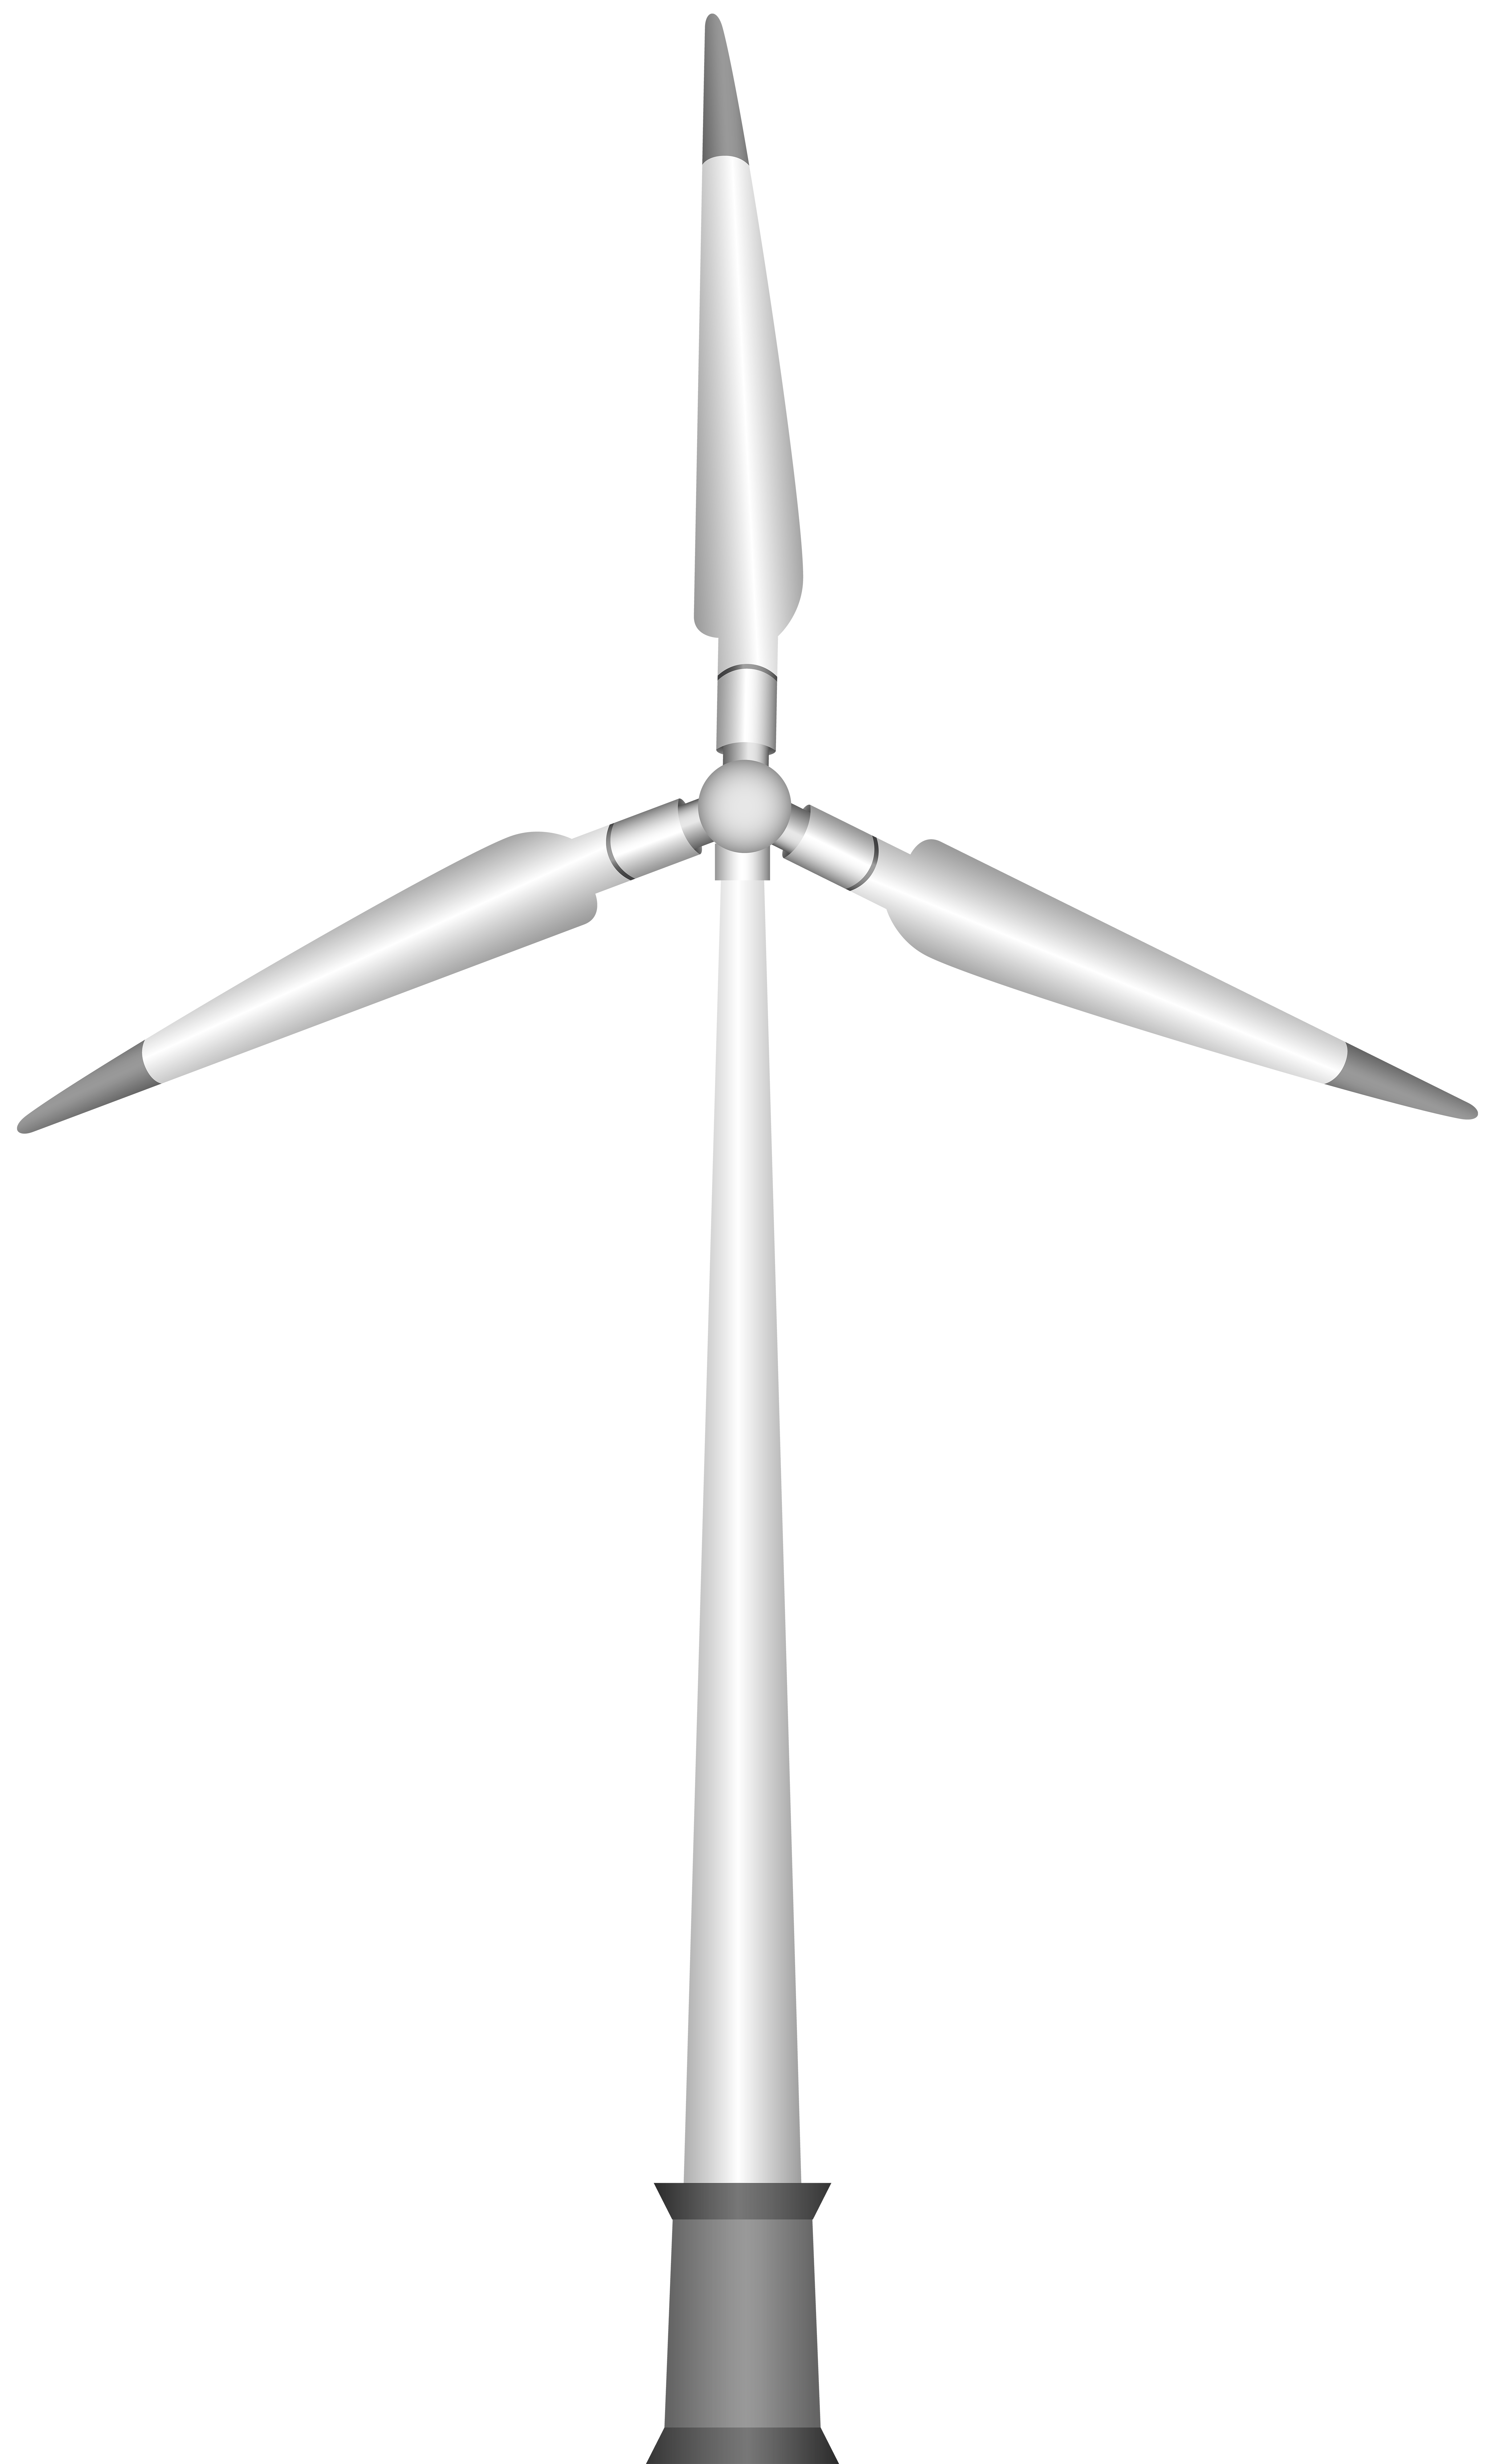 Wind Turbine PNG Clipart.